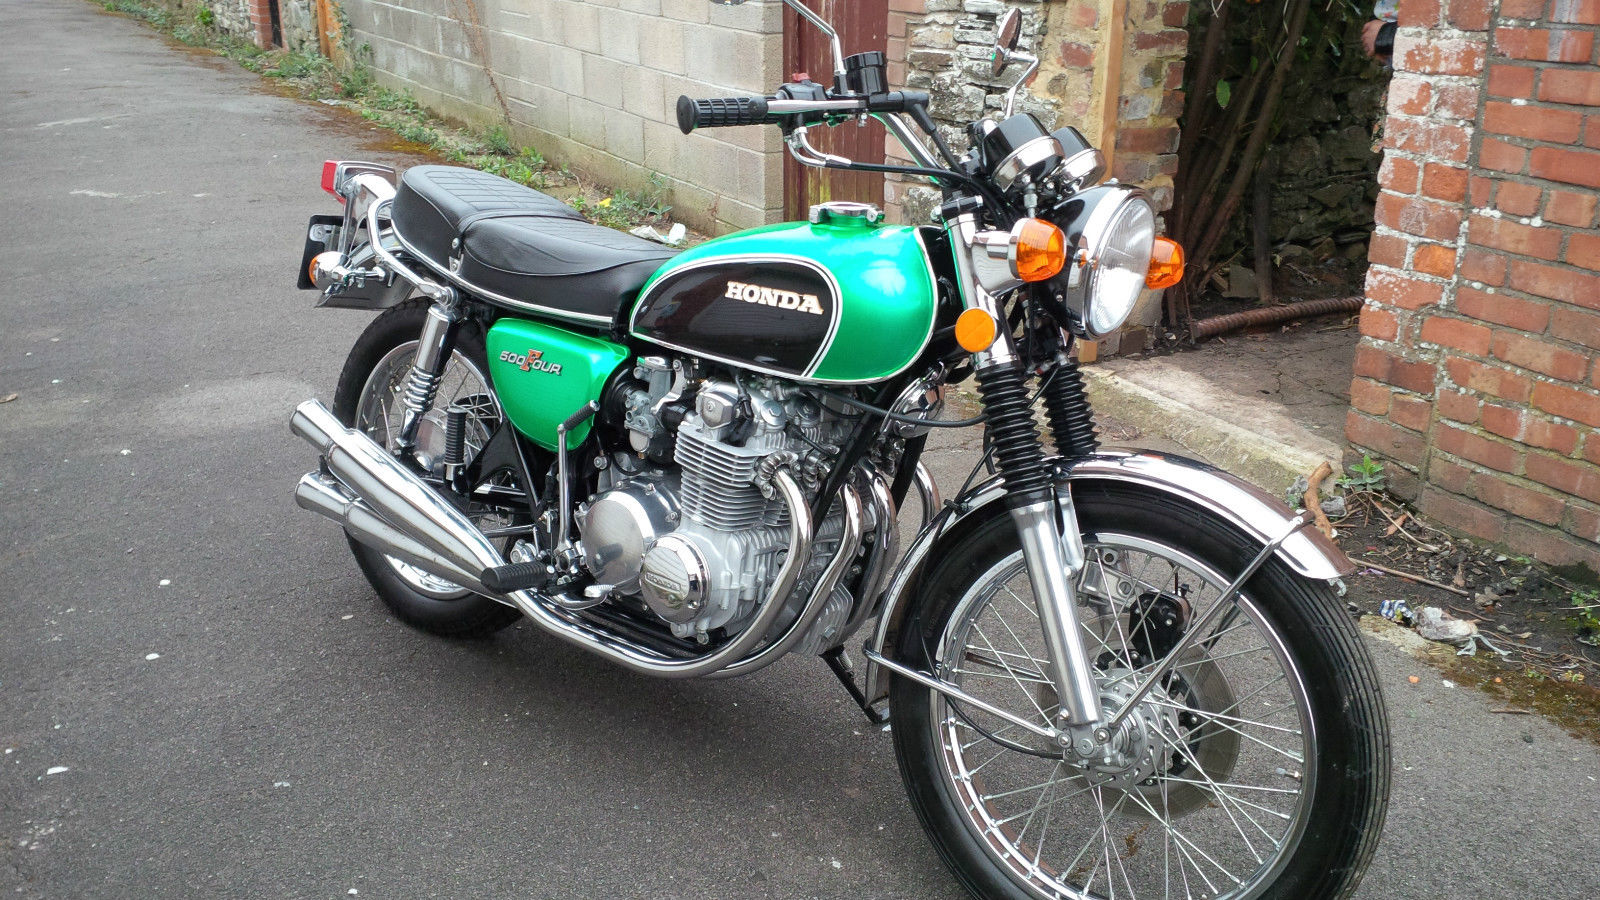 Honda CB500 Four - 1972 - Right Side View, Wheels, Brakes and Tyres, Forks, Frame, Headlight, Clocks, Mirrors, Exhausts and Kick Start.